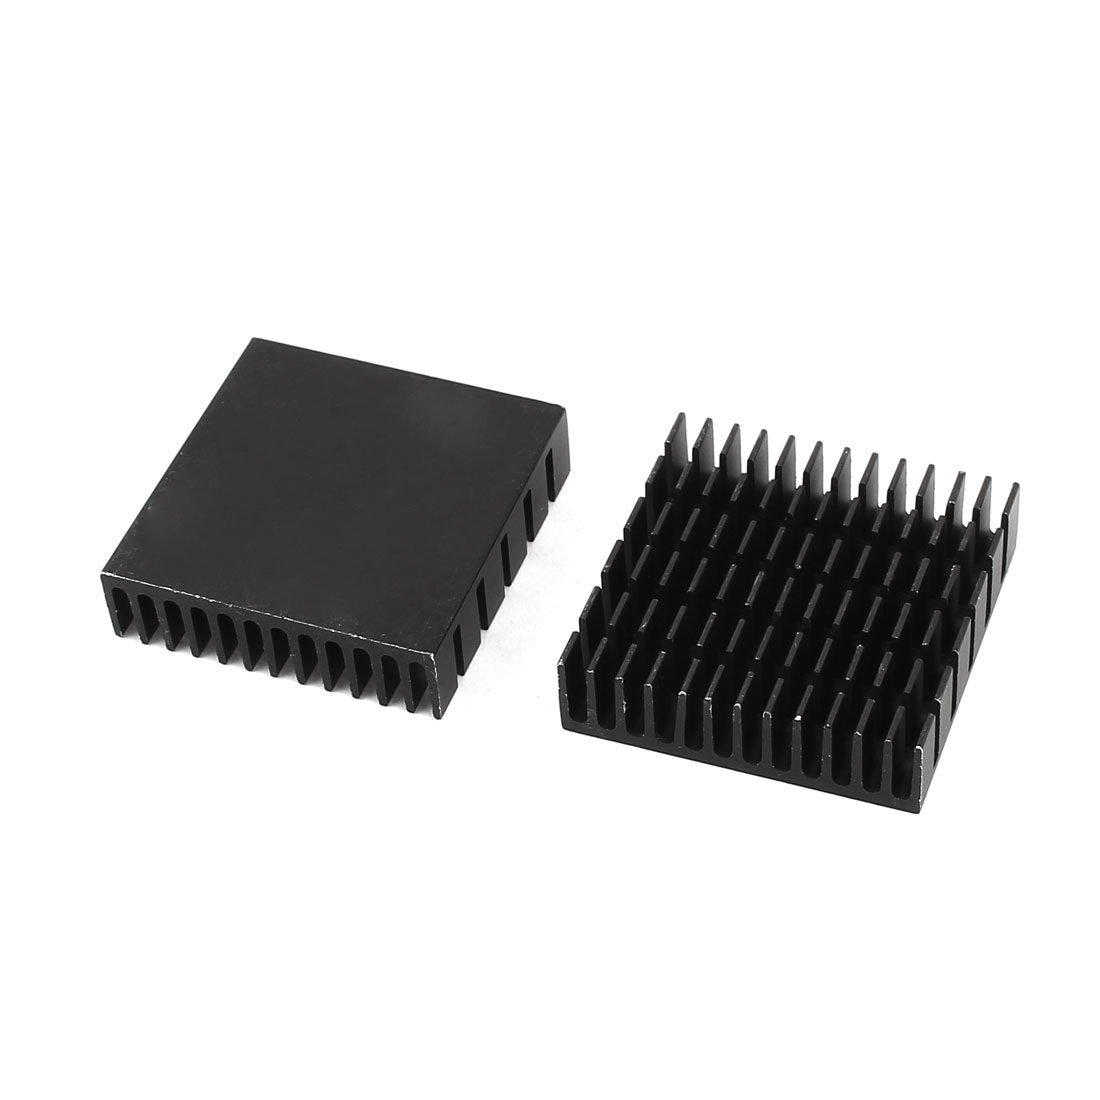 2 Pcs Black Aluminum Radiator Heat Sink Heatsink 40x40x11mm